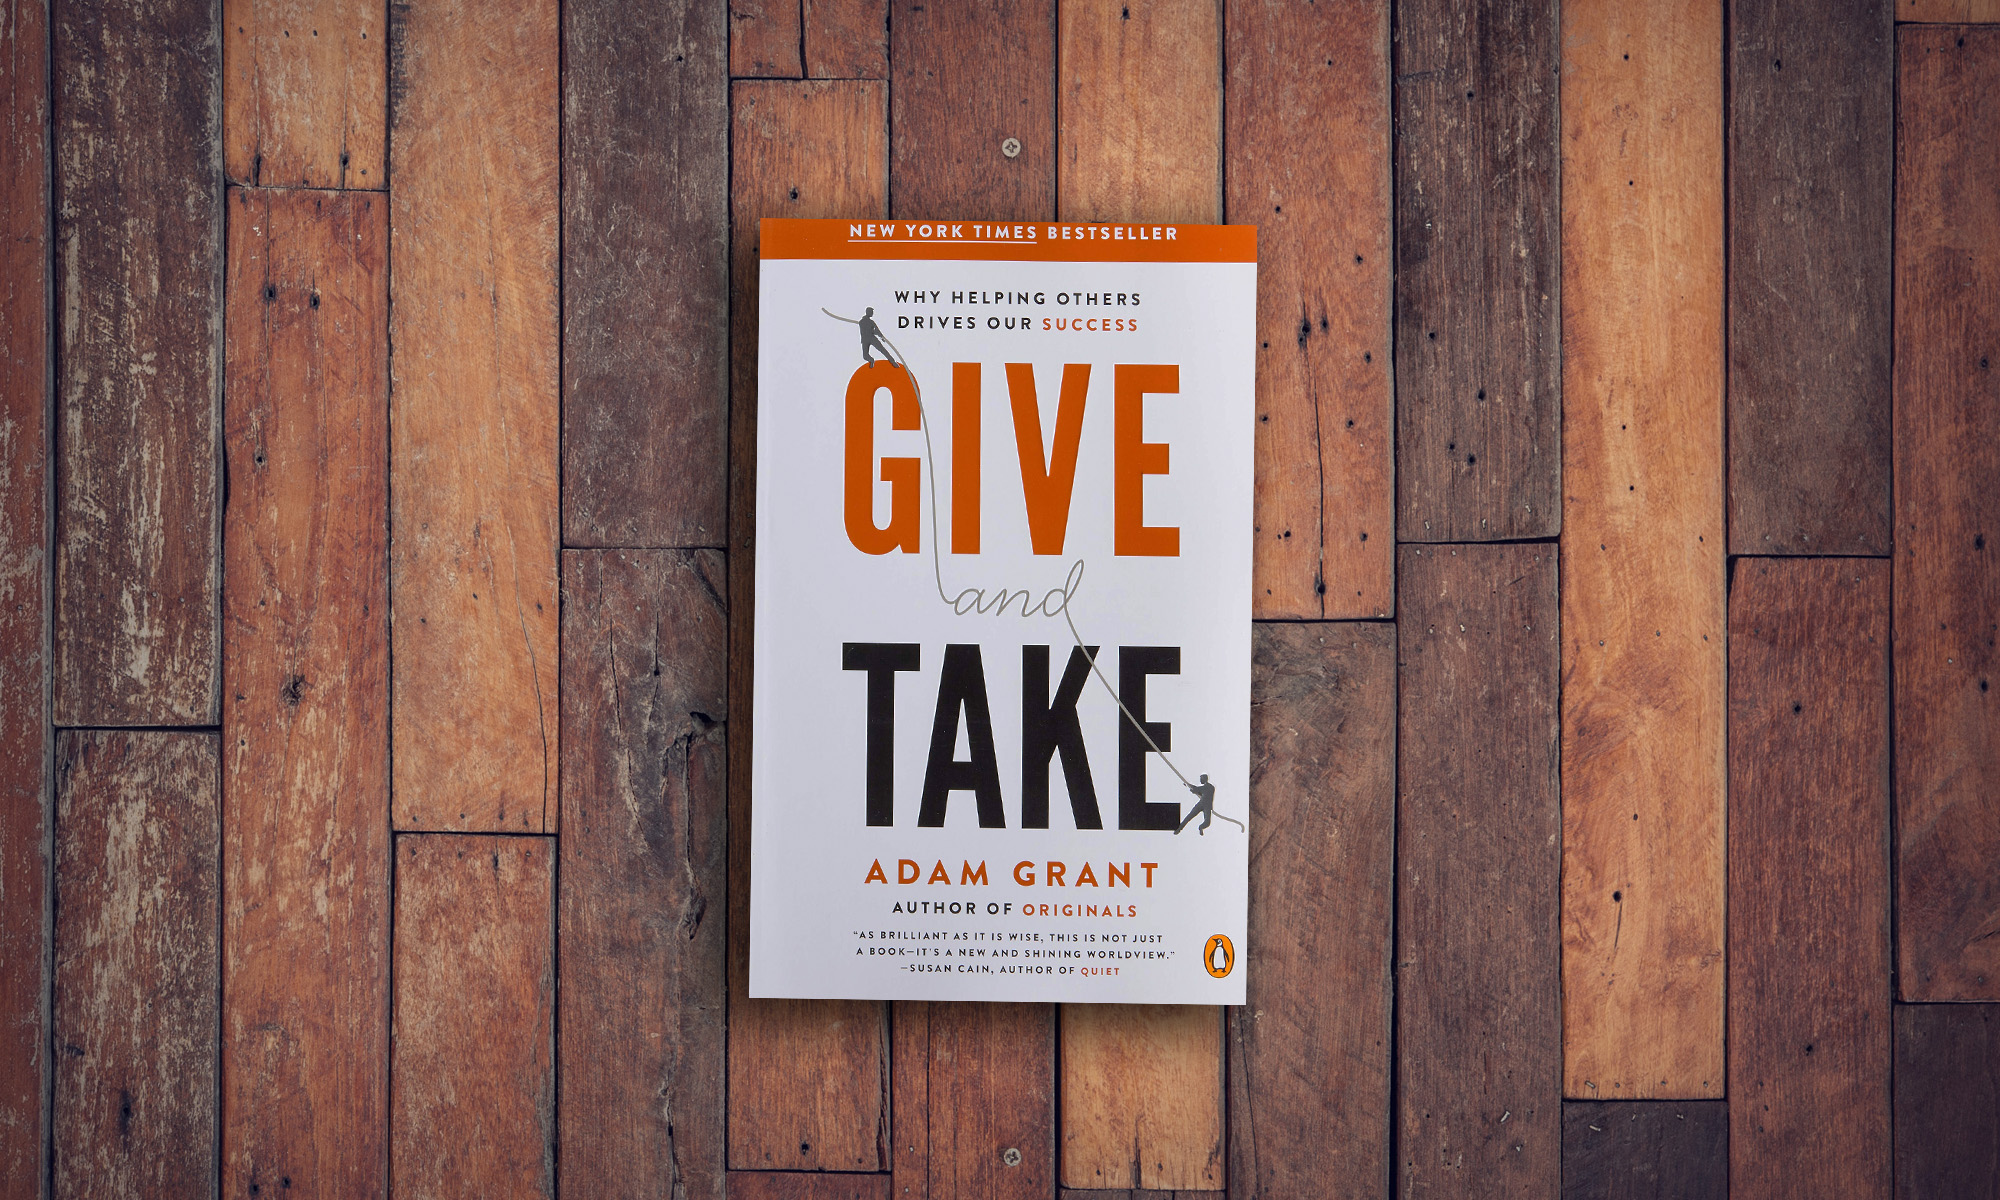 Photo of the book Give and Take from Adam Grant